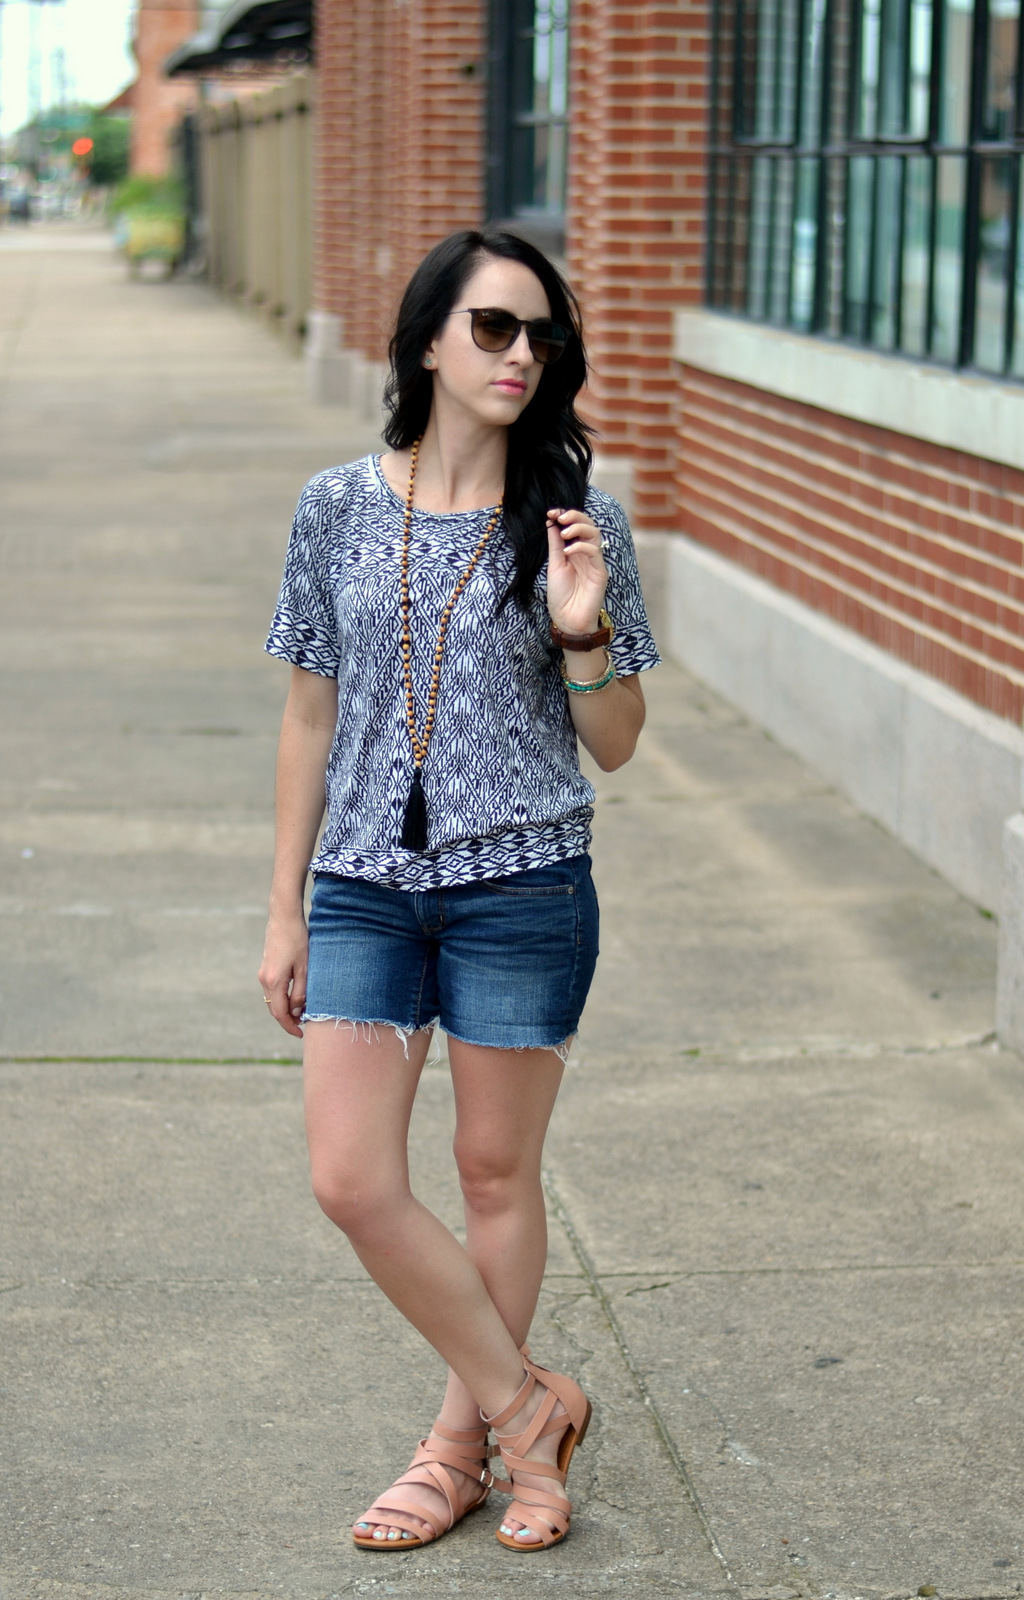 Cut-off denim shorts, patterned tee, tassel necklace